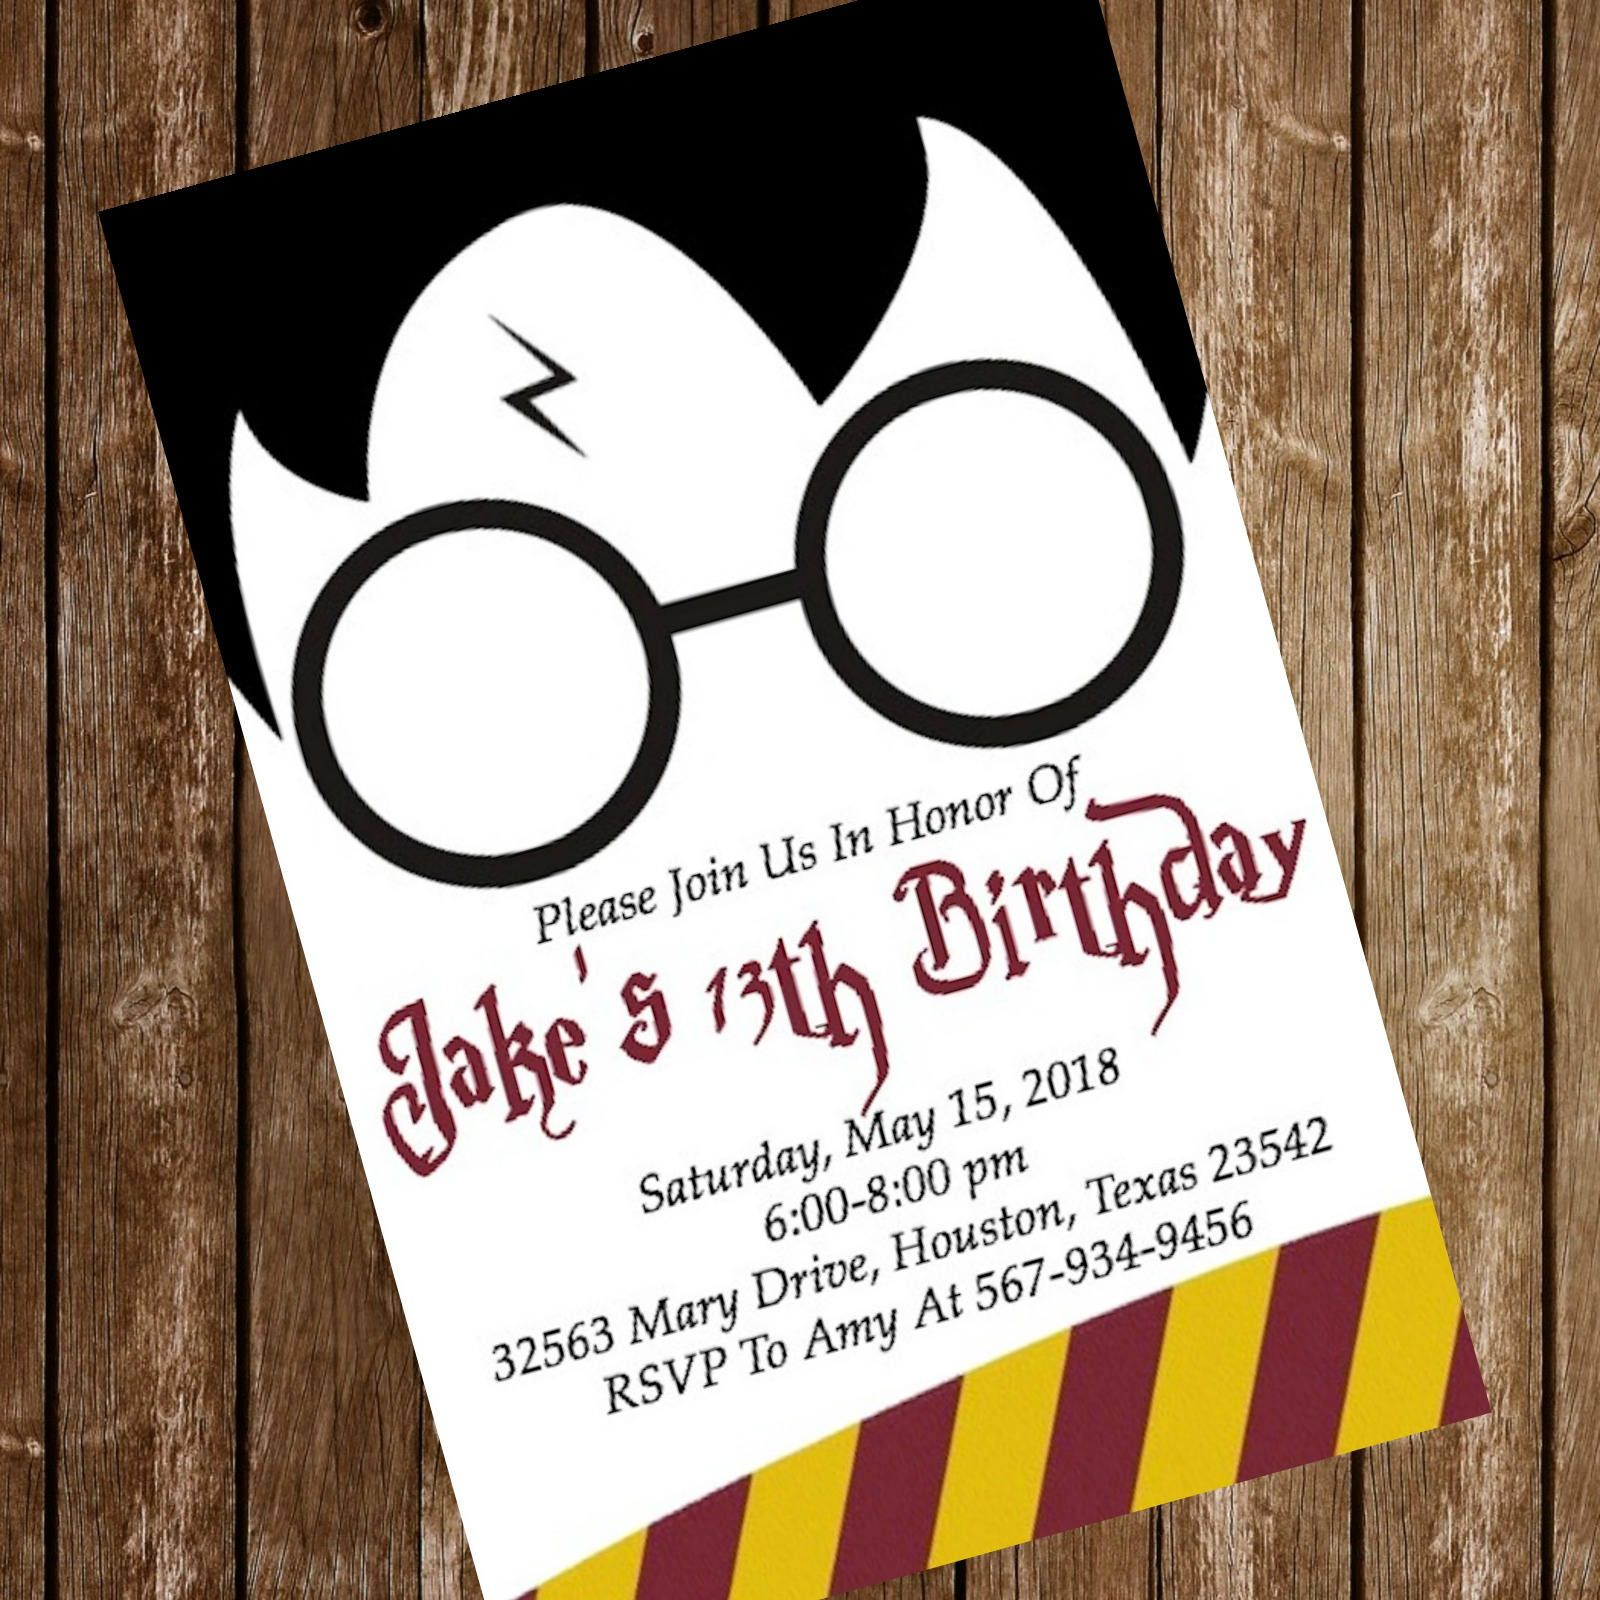 Harry Potter Hogwarts Birthday Party Invitation Download 4 x 6 or ...